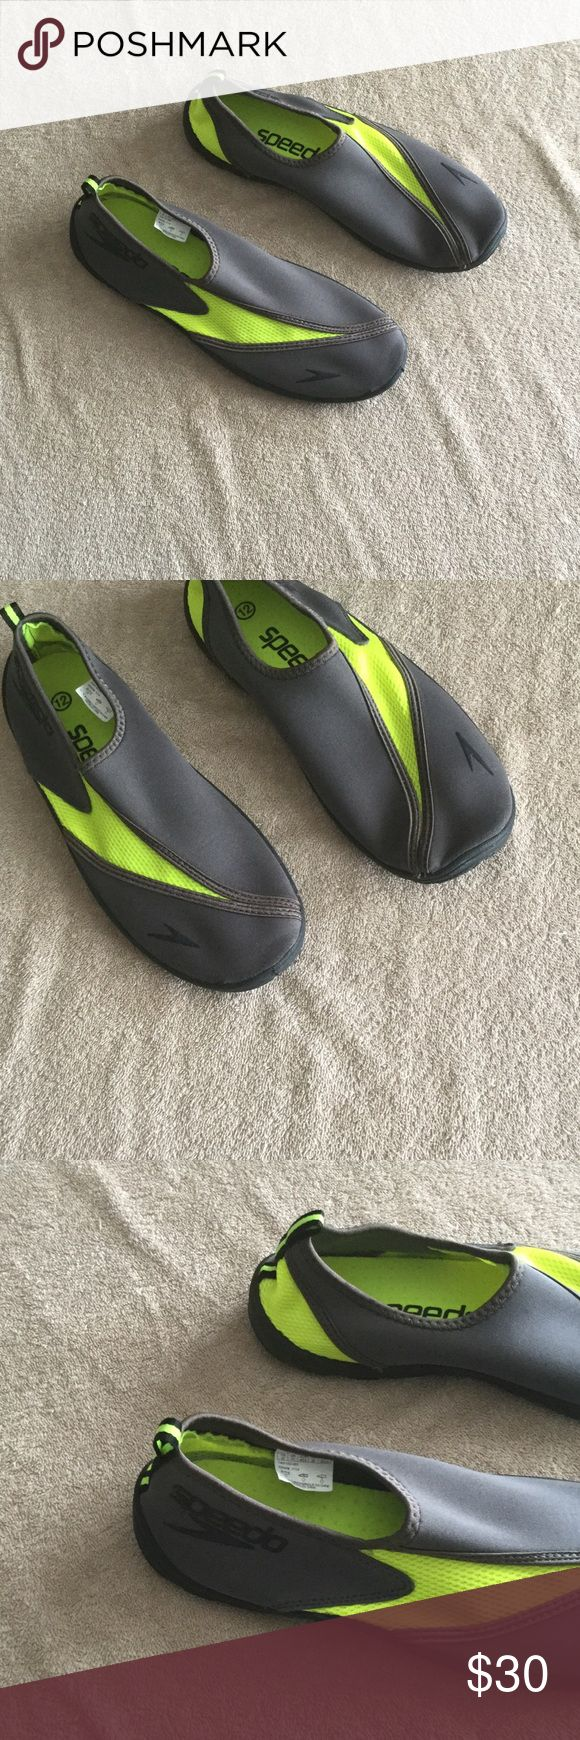 (Men) Speedo Water Shoes Excellent condition. You enjoy wearing this water shoes for summer time! Speedo Shoes